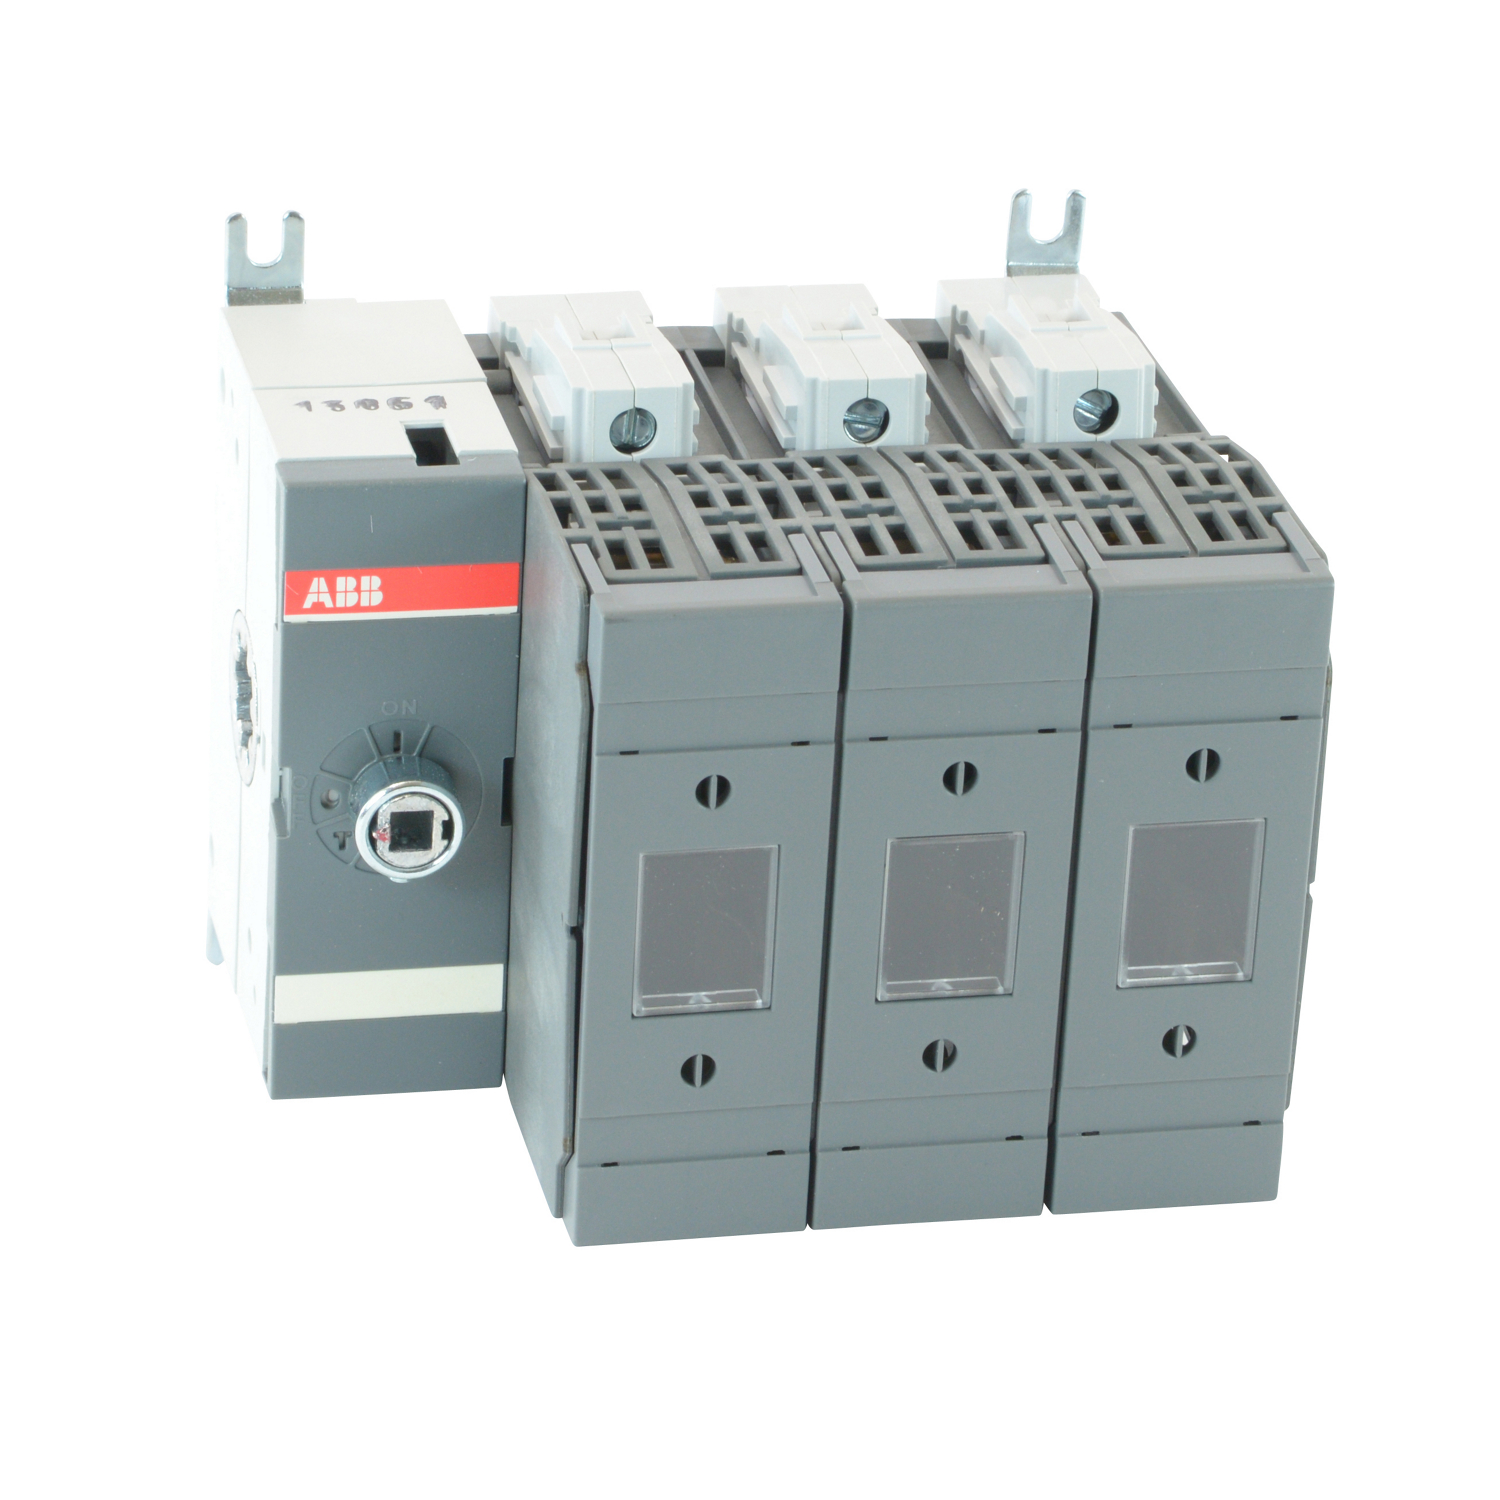 OS60GJ03 ABB 3POLE 60A CLASS J FUSIBLE DISCONNECT SWITCH; ALL POLES TO RIGHT OF MECHANISM